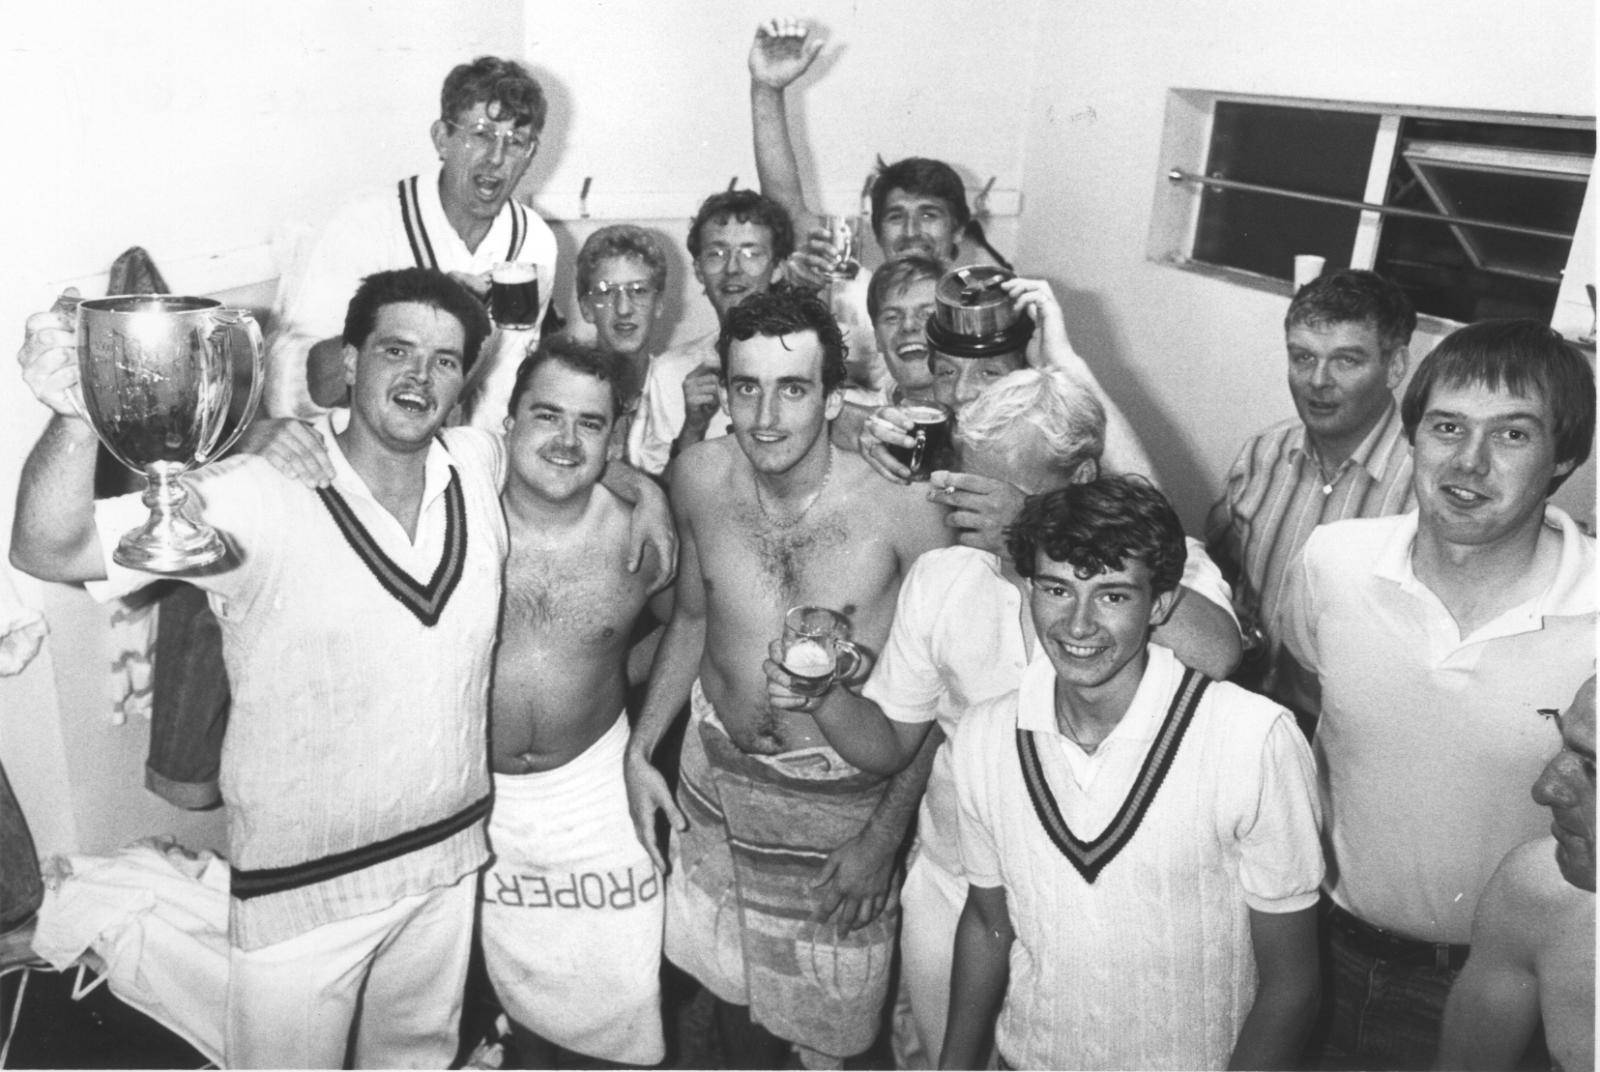 Chris Kelmere leads the dressing room celebrations after Babbacombe's win in the 1987 Narracott Cup final